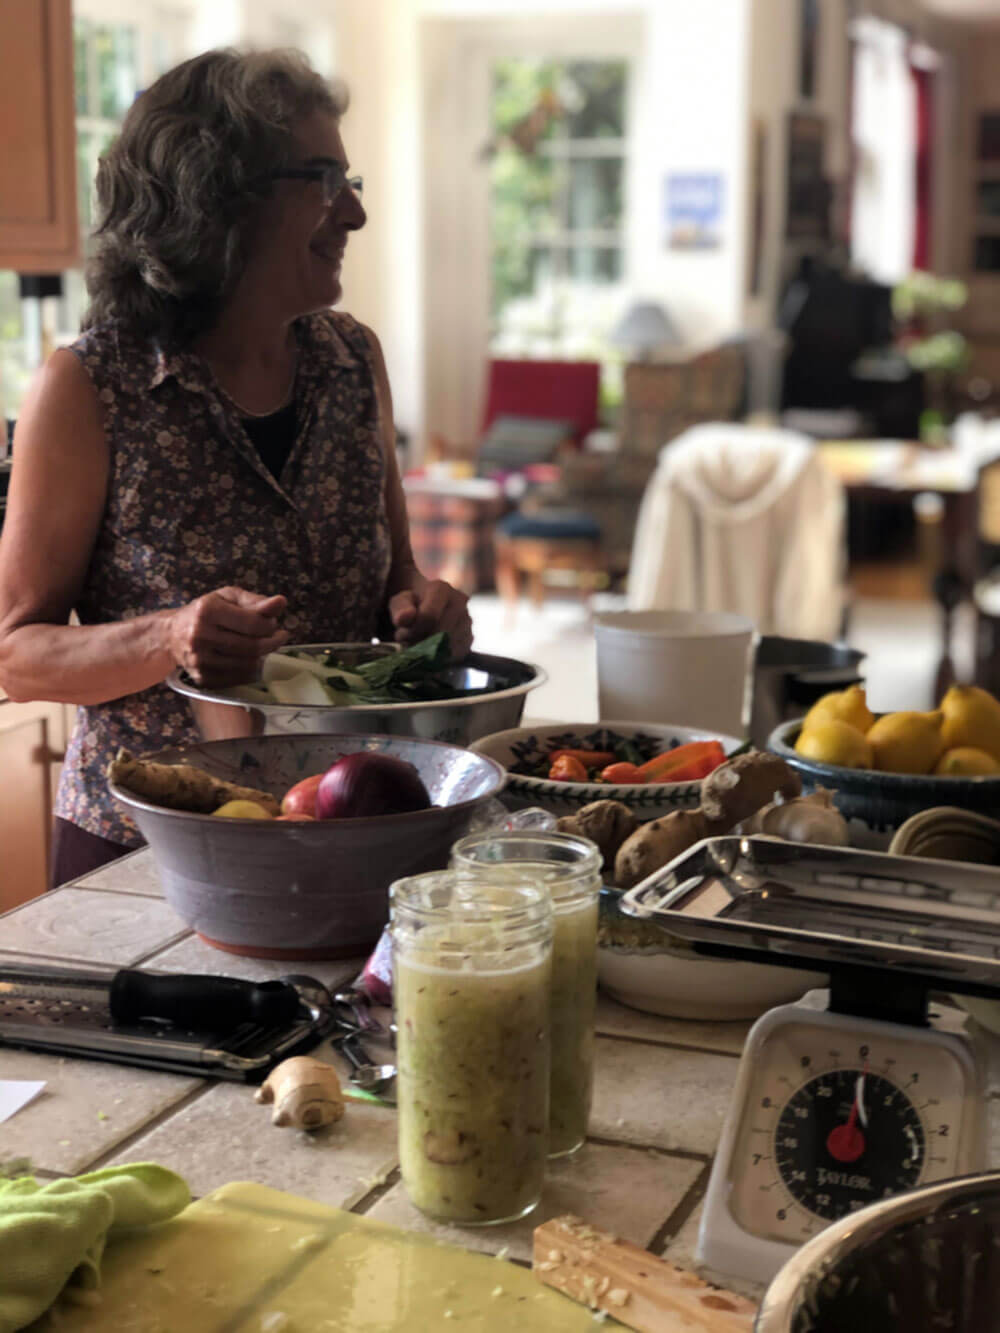 Karen Palcho offers fermentation classes at my home near Reading, PA